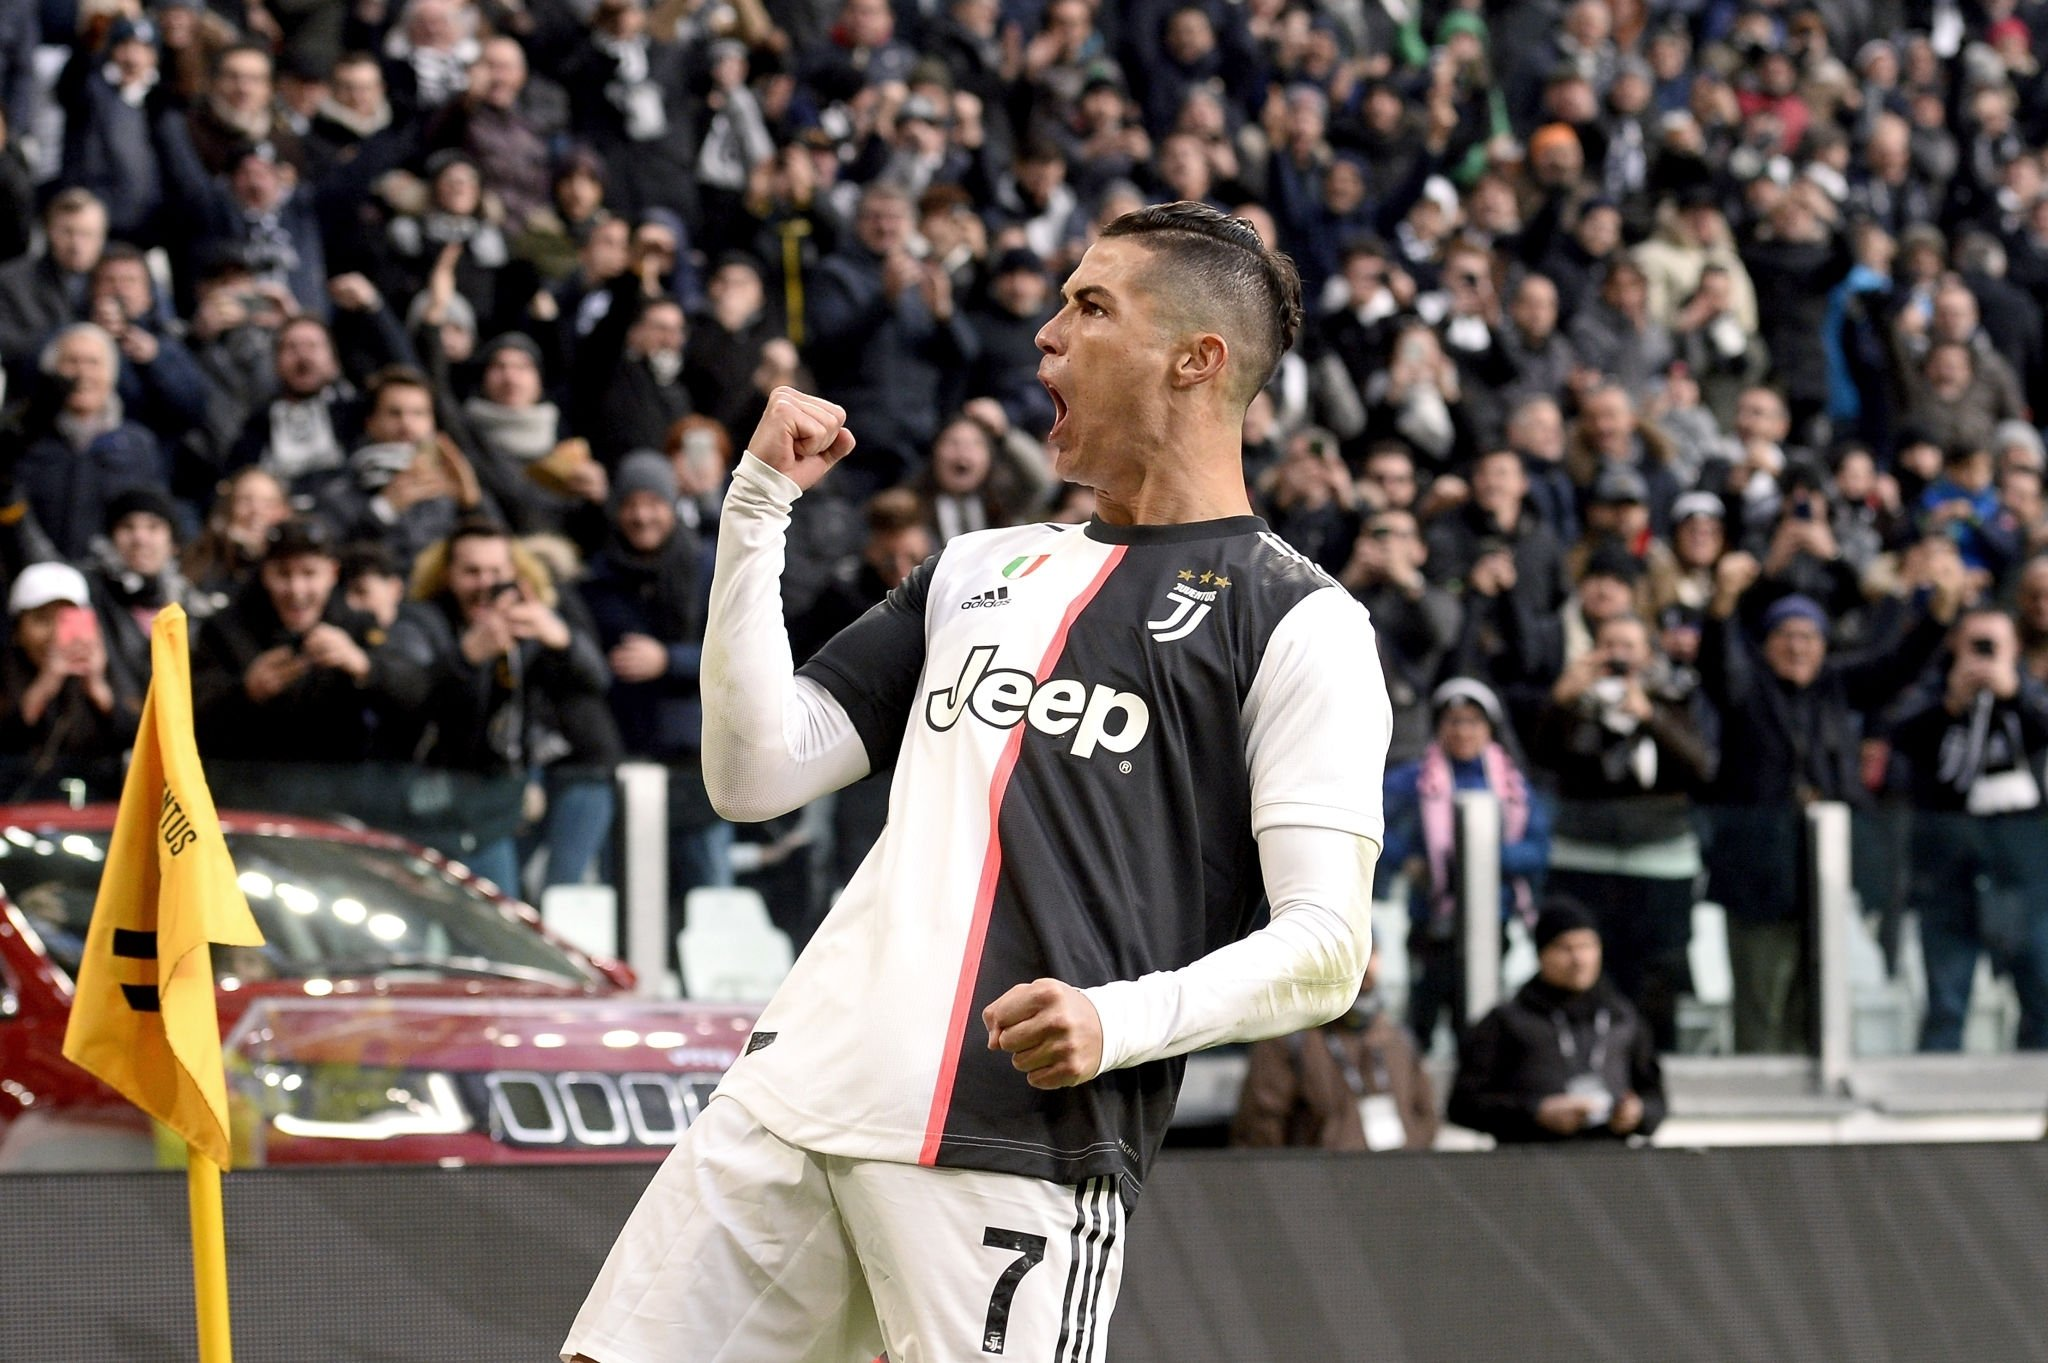 Cristiano Ronaldo Becomes The Greatest Goalscorer In Football History